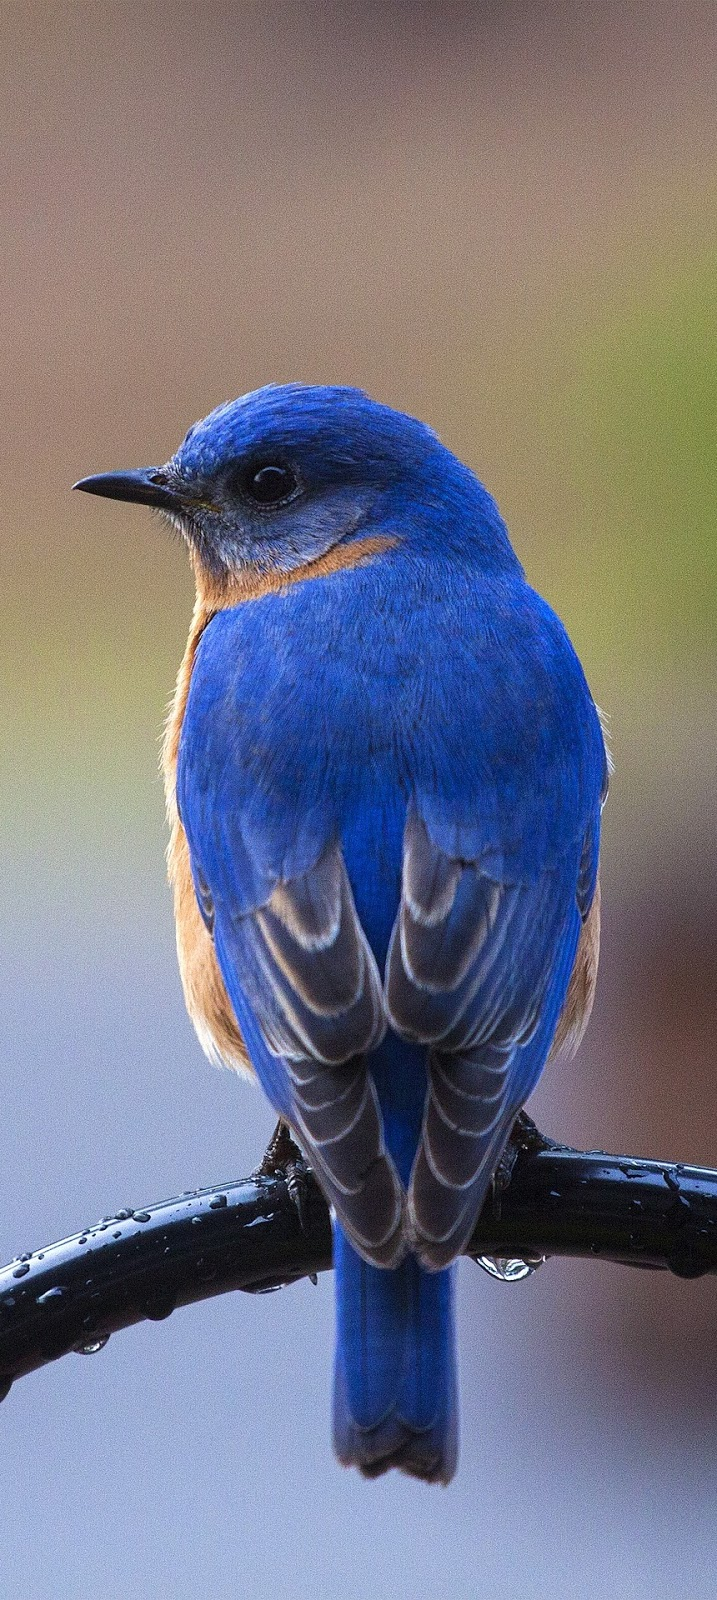 Picture of a beautiful bluebird.